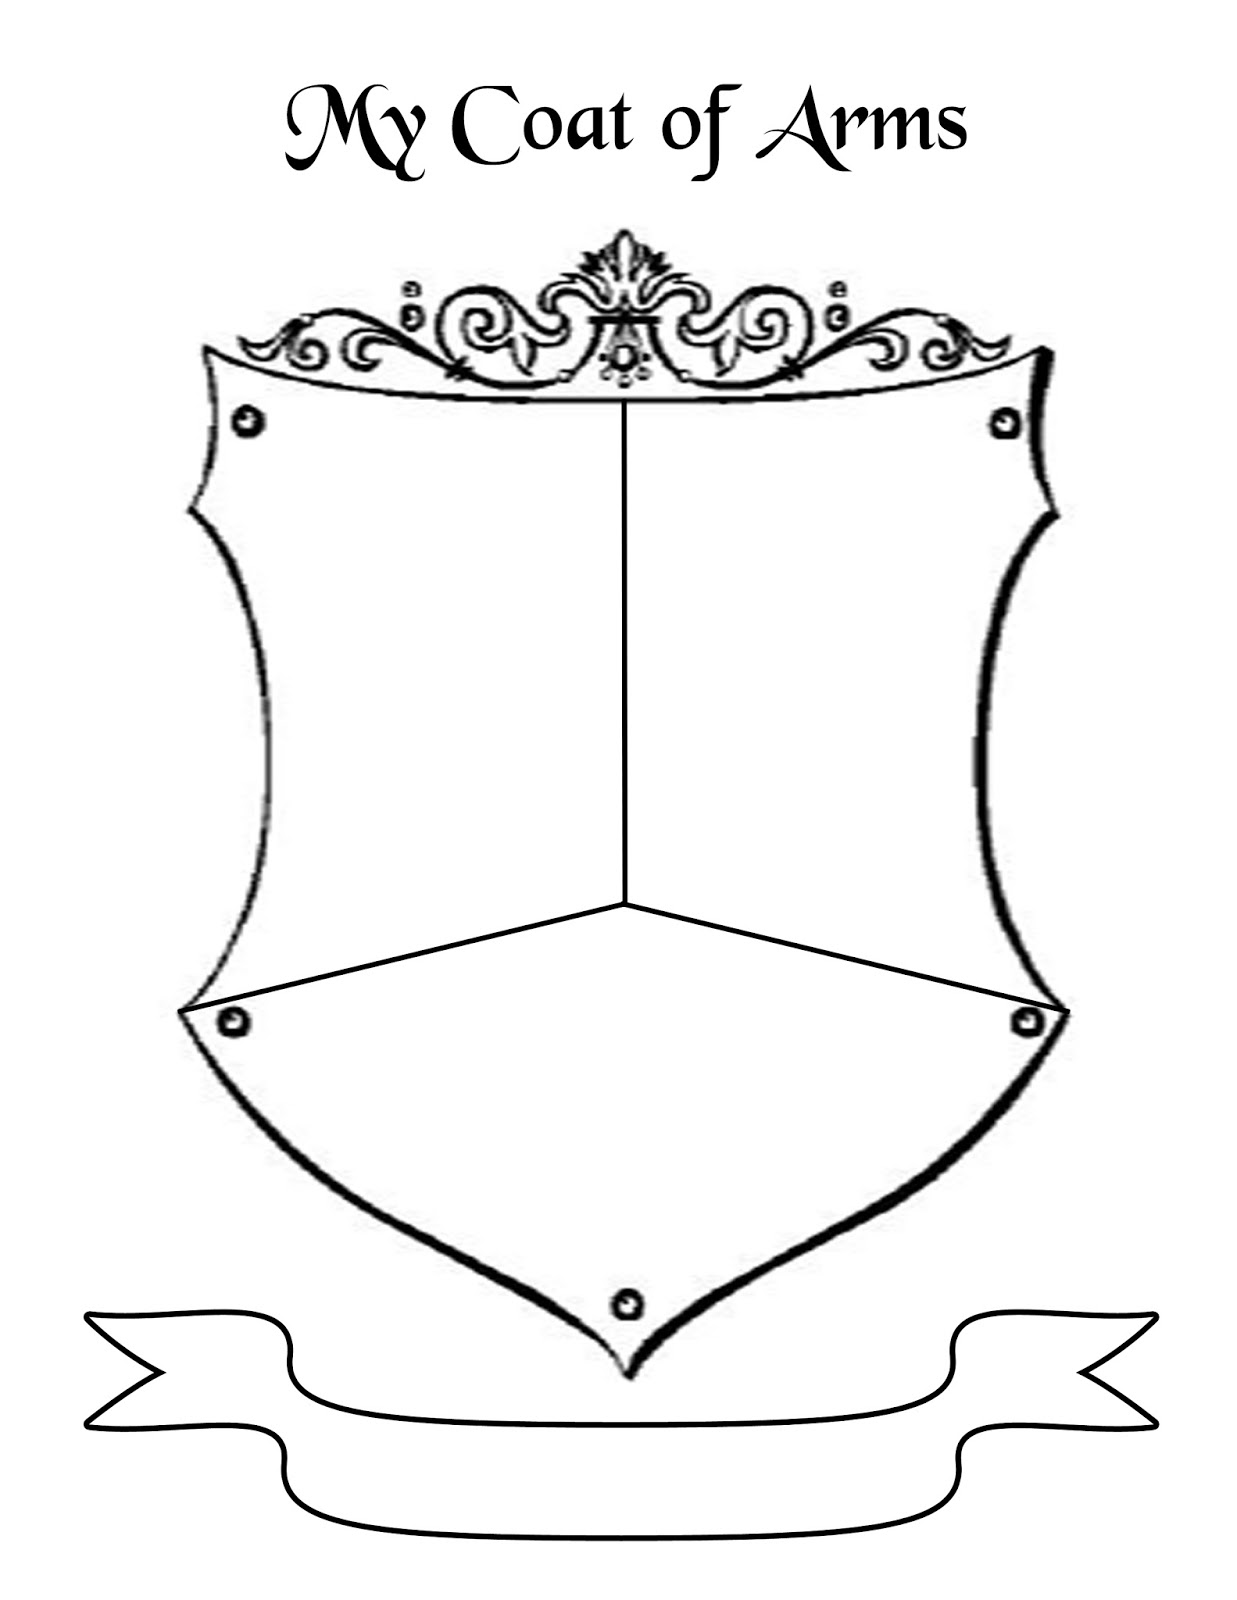 make your own coat of arms template - troop leader mom getting started with girl scout daisies